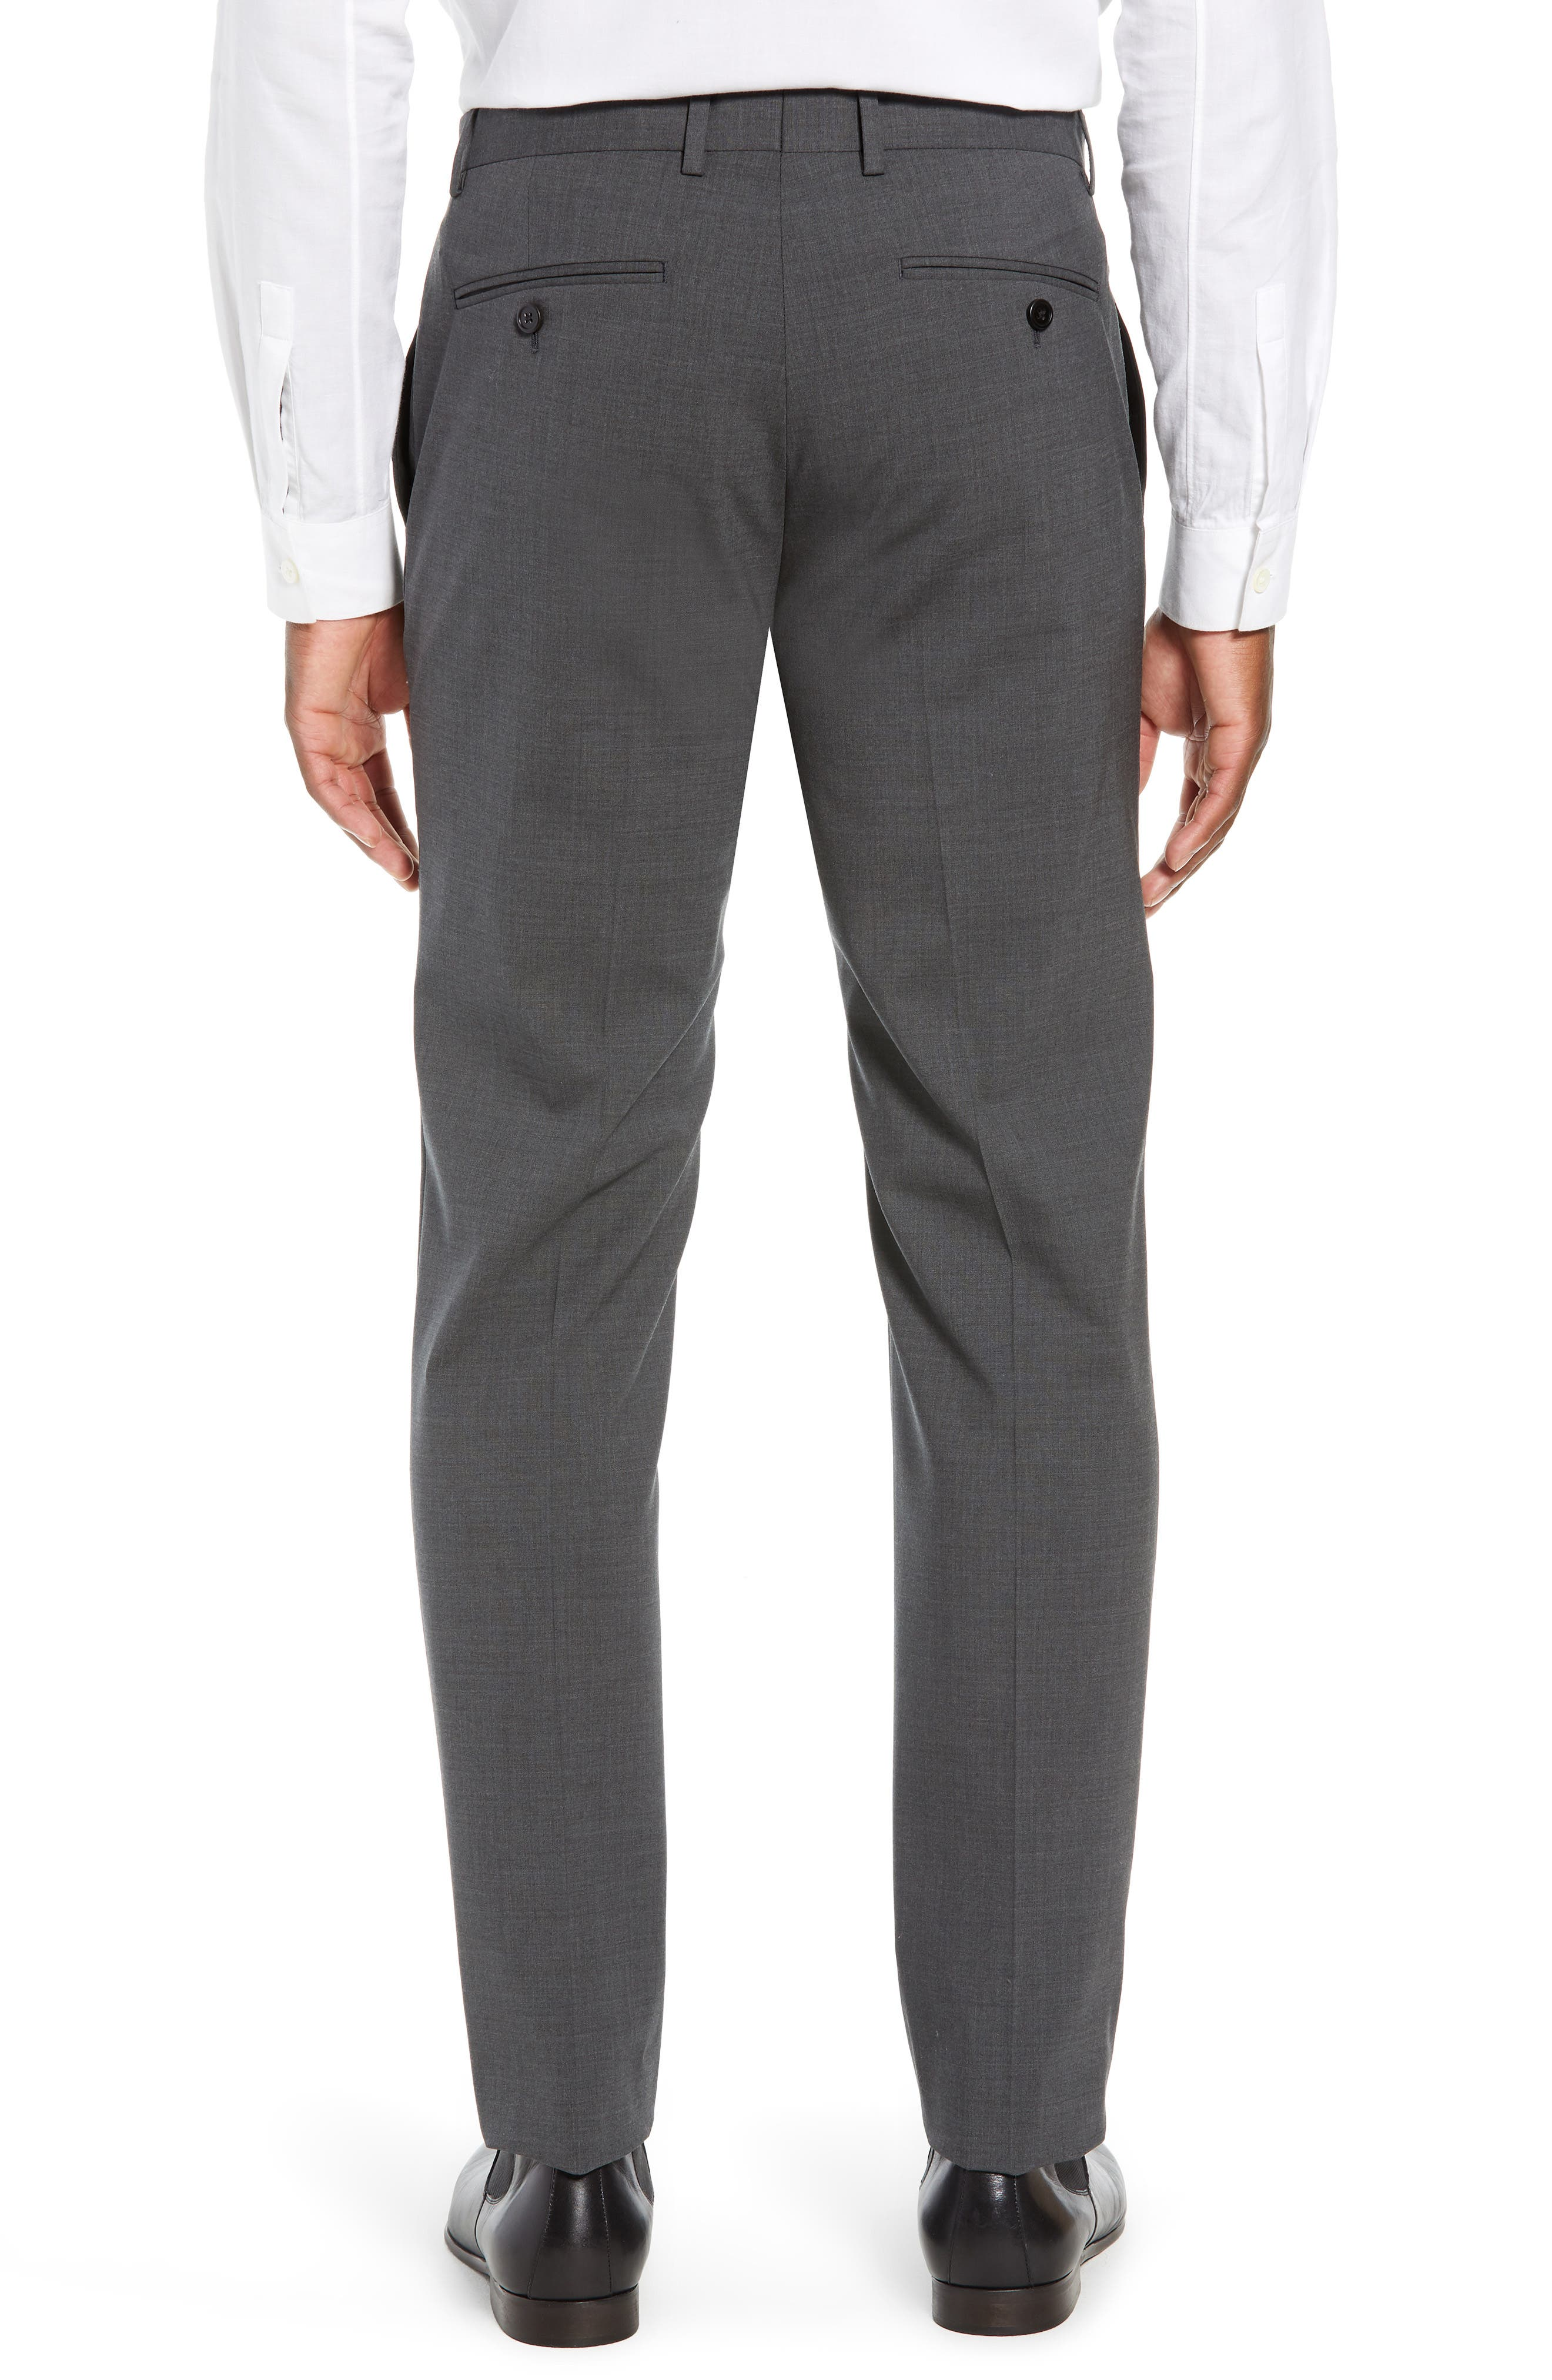 Mayer New Tailor 2 Wool Trousers,                             Alternate thumbnail 2, color,                             CHARCOAL